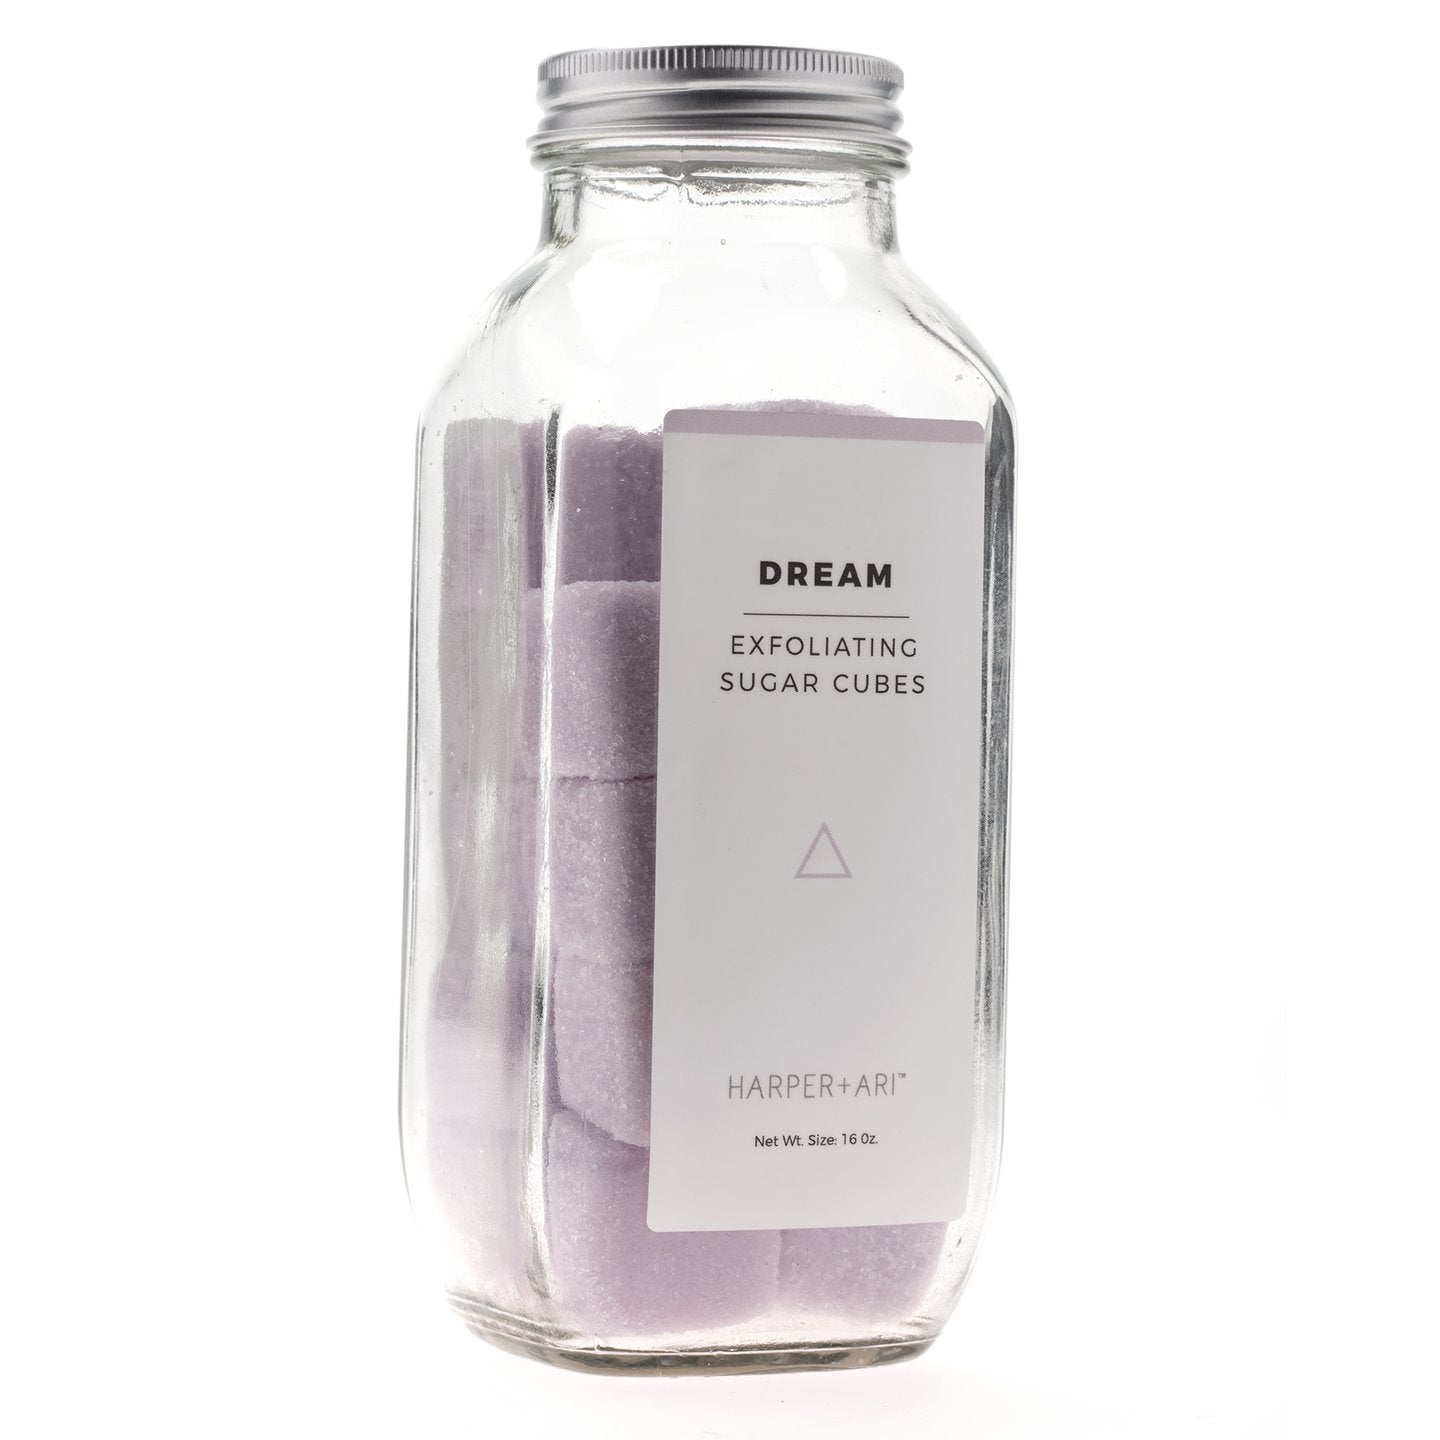 EXFOLIATING SUGAR CUBES IN GLASS BOTTLE